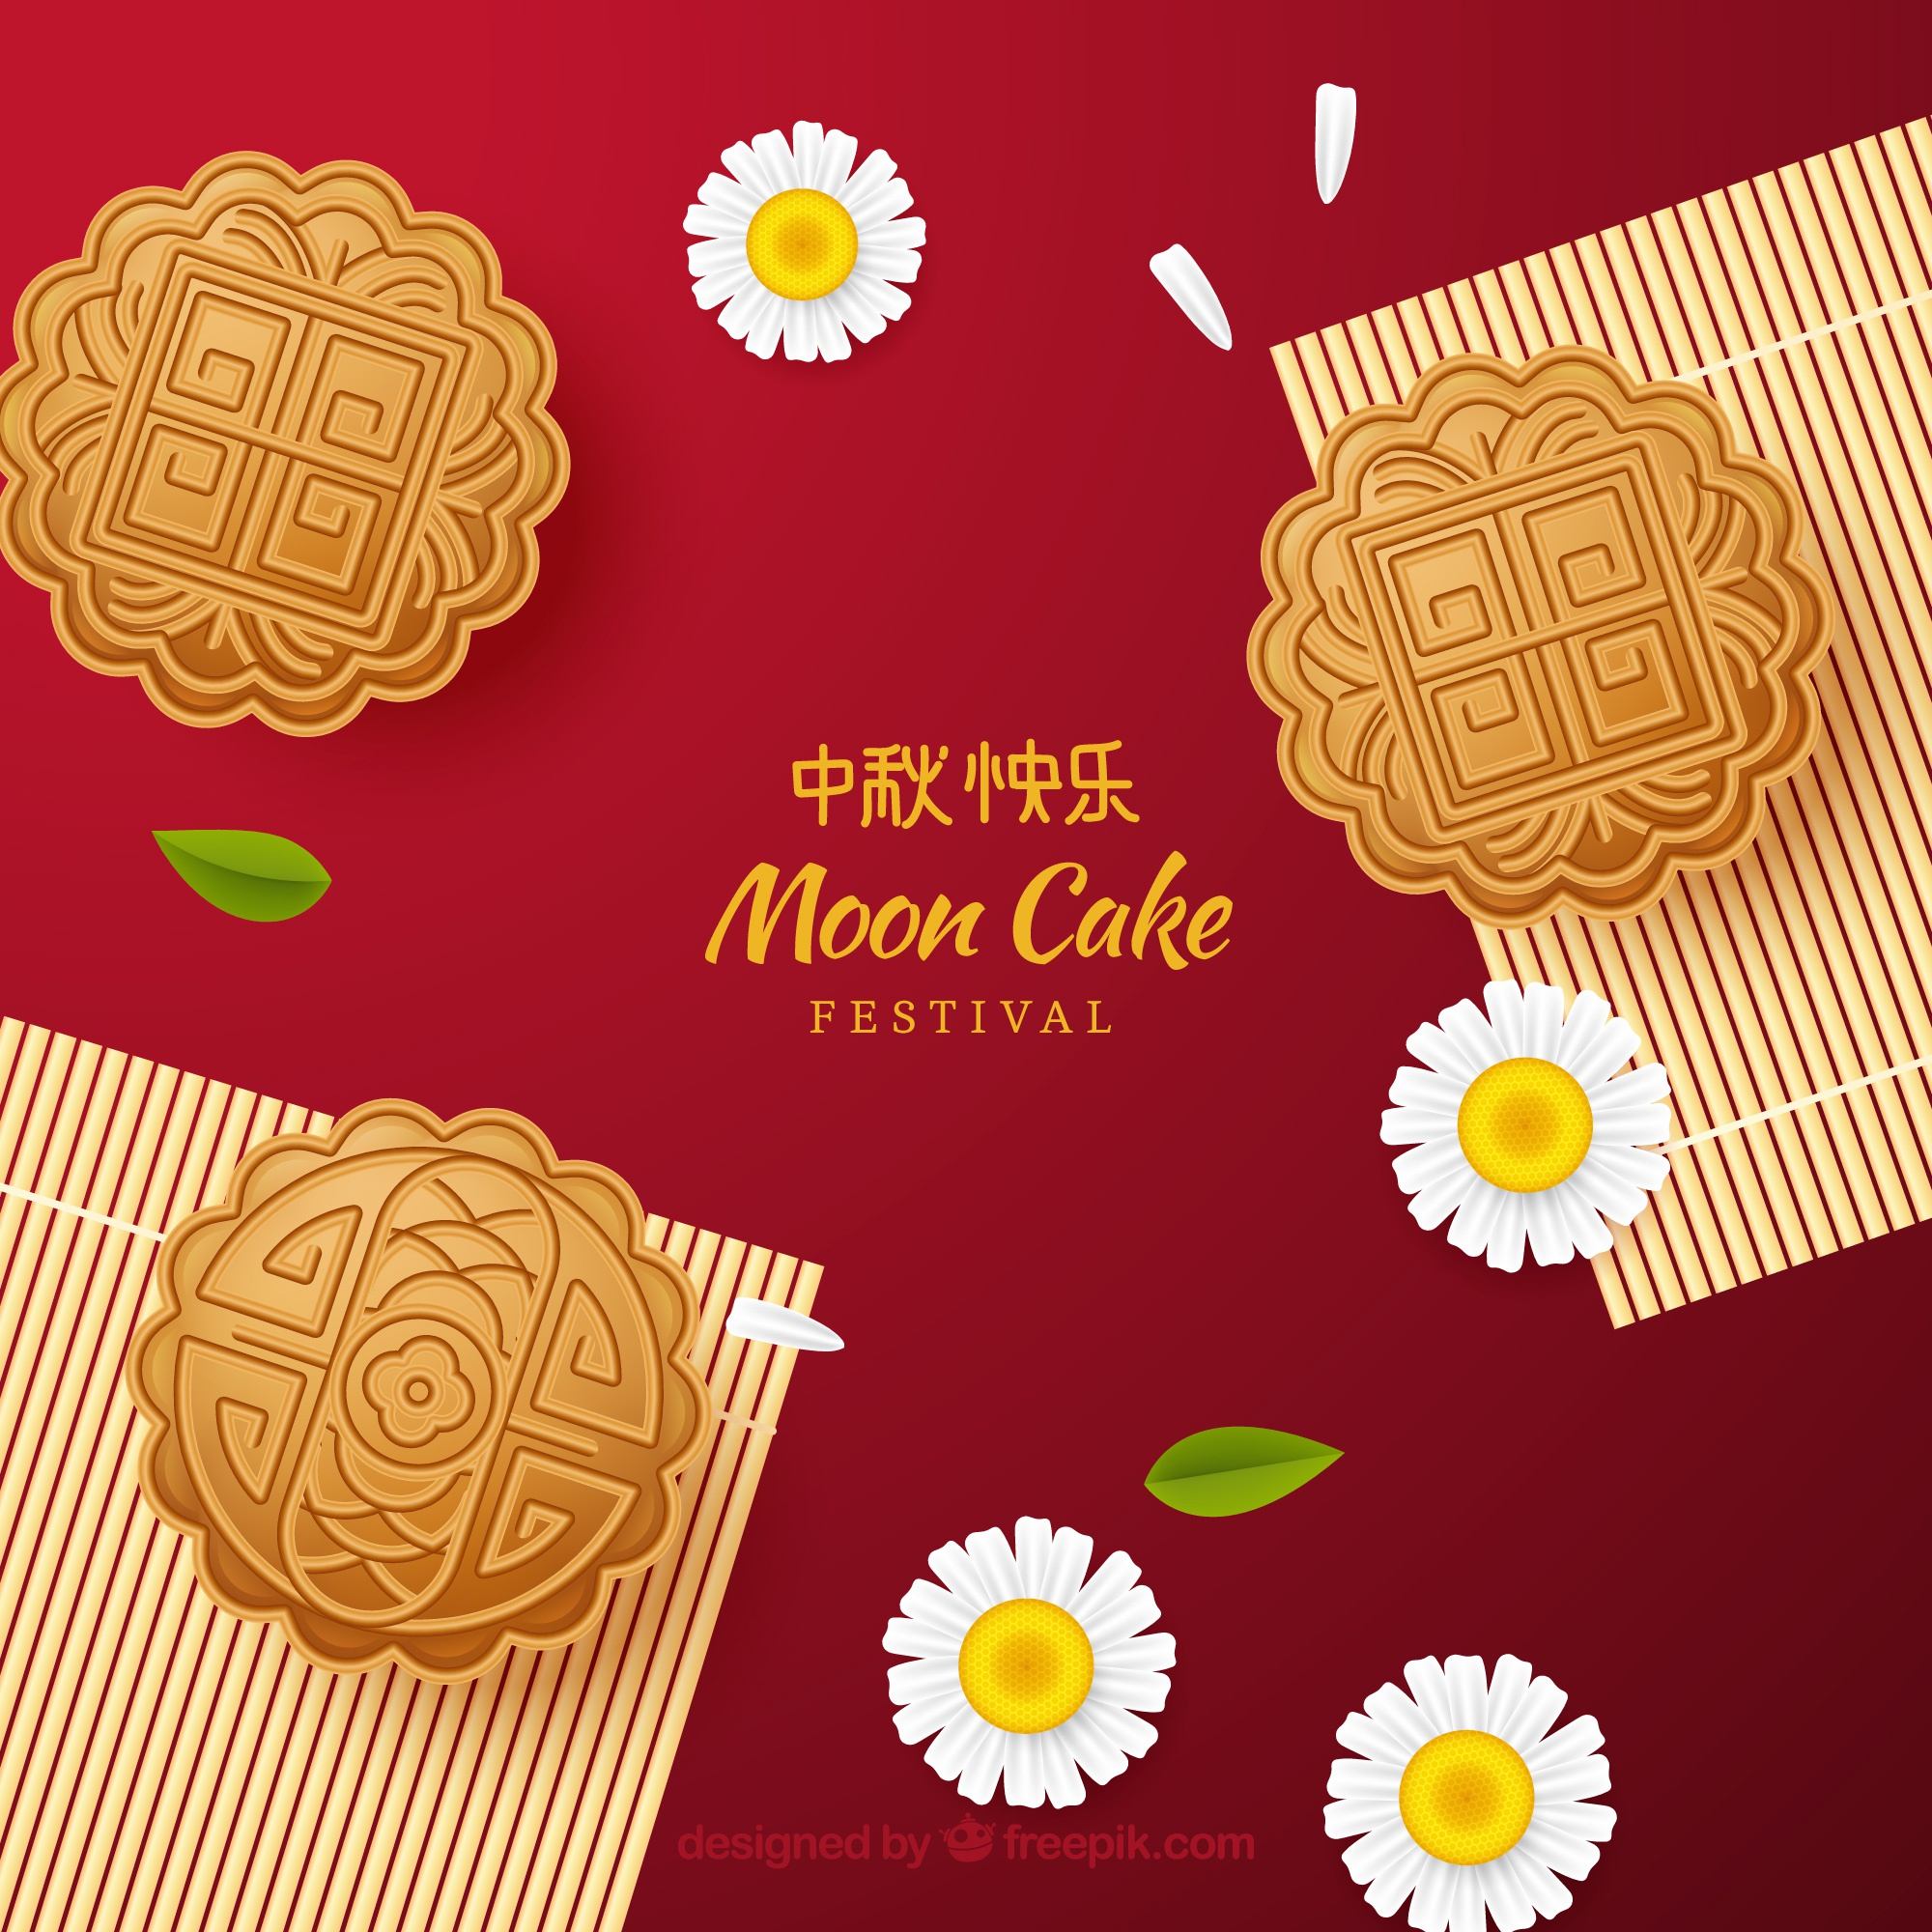 Delicious moon cake background in realistic style